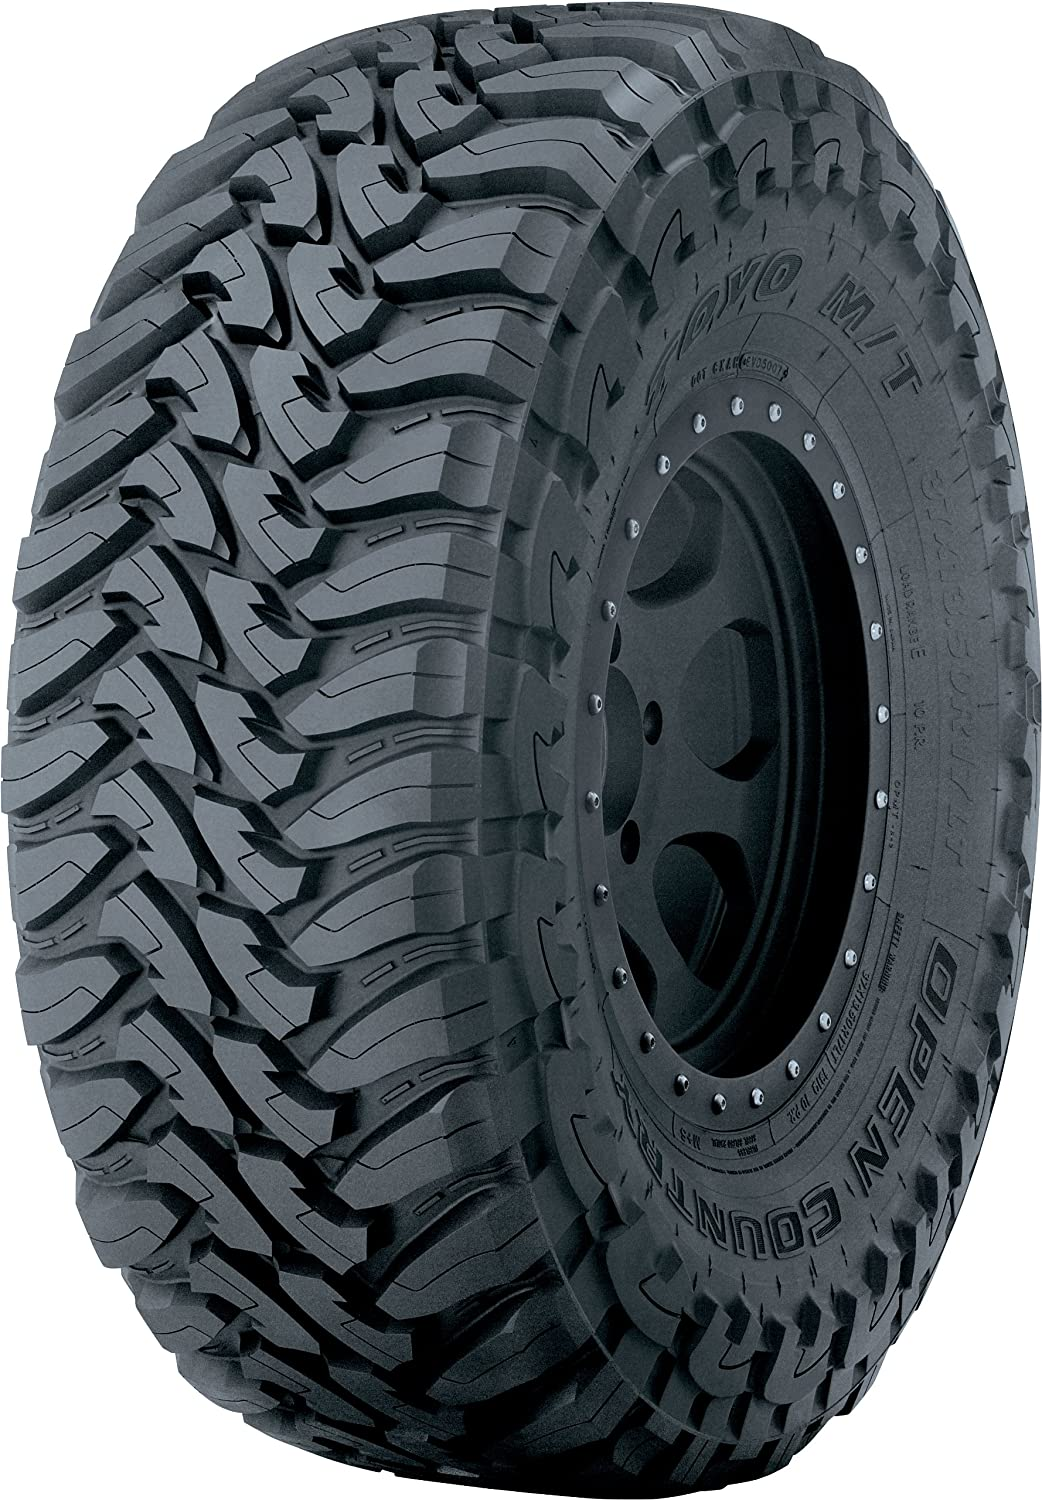 Toyo Tire Open Country M/T Mud-Terrain Tire - 33 x 1250R20 114Q